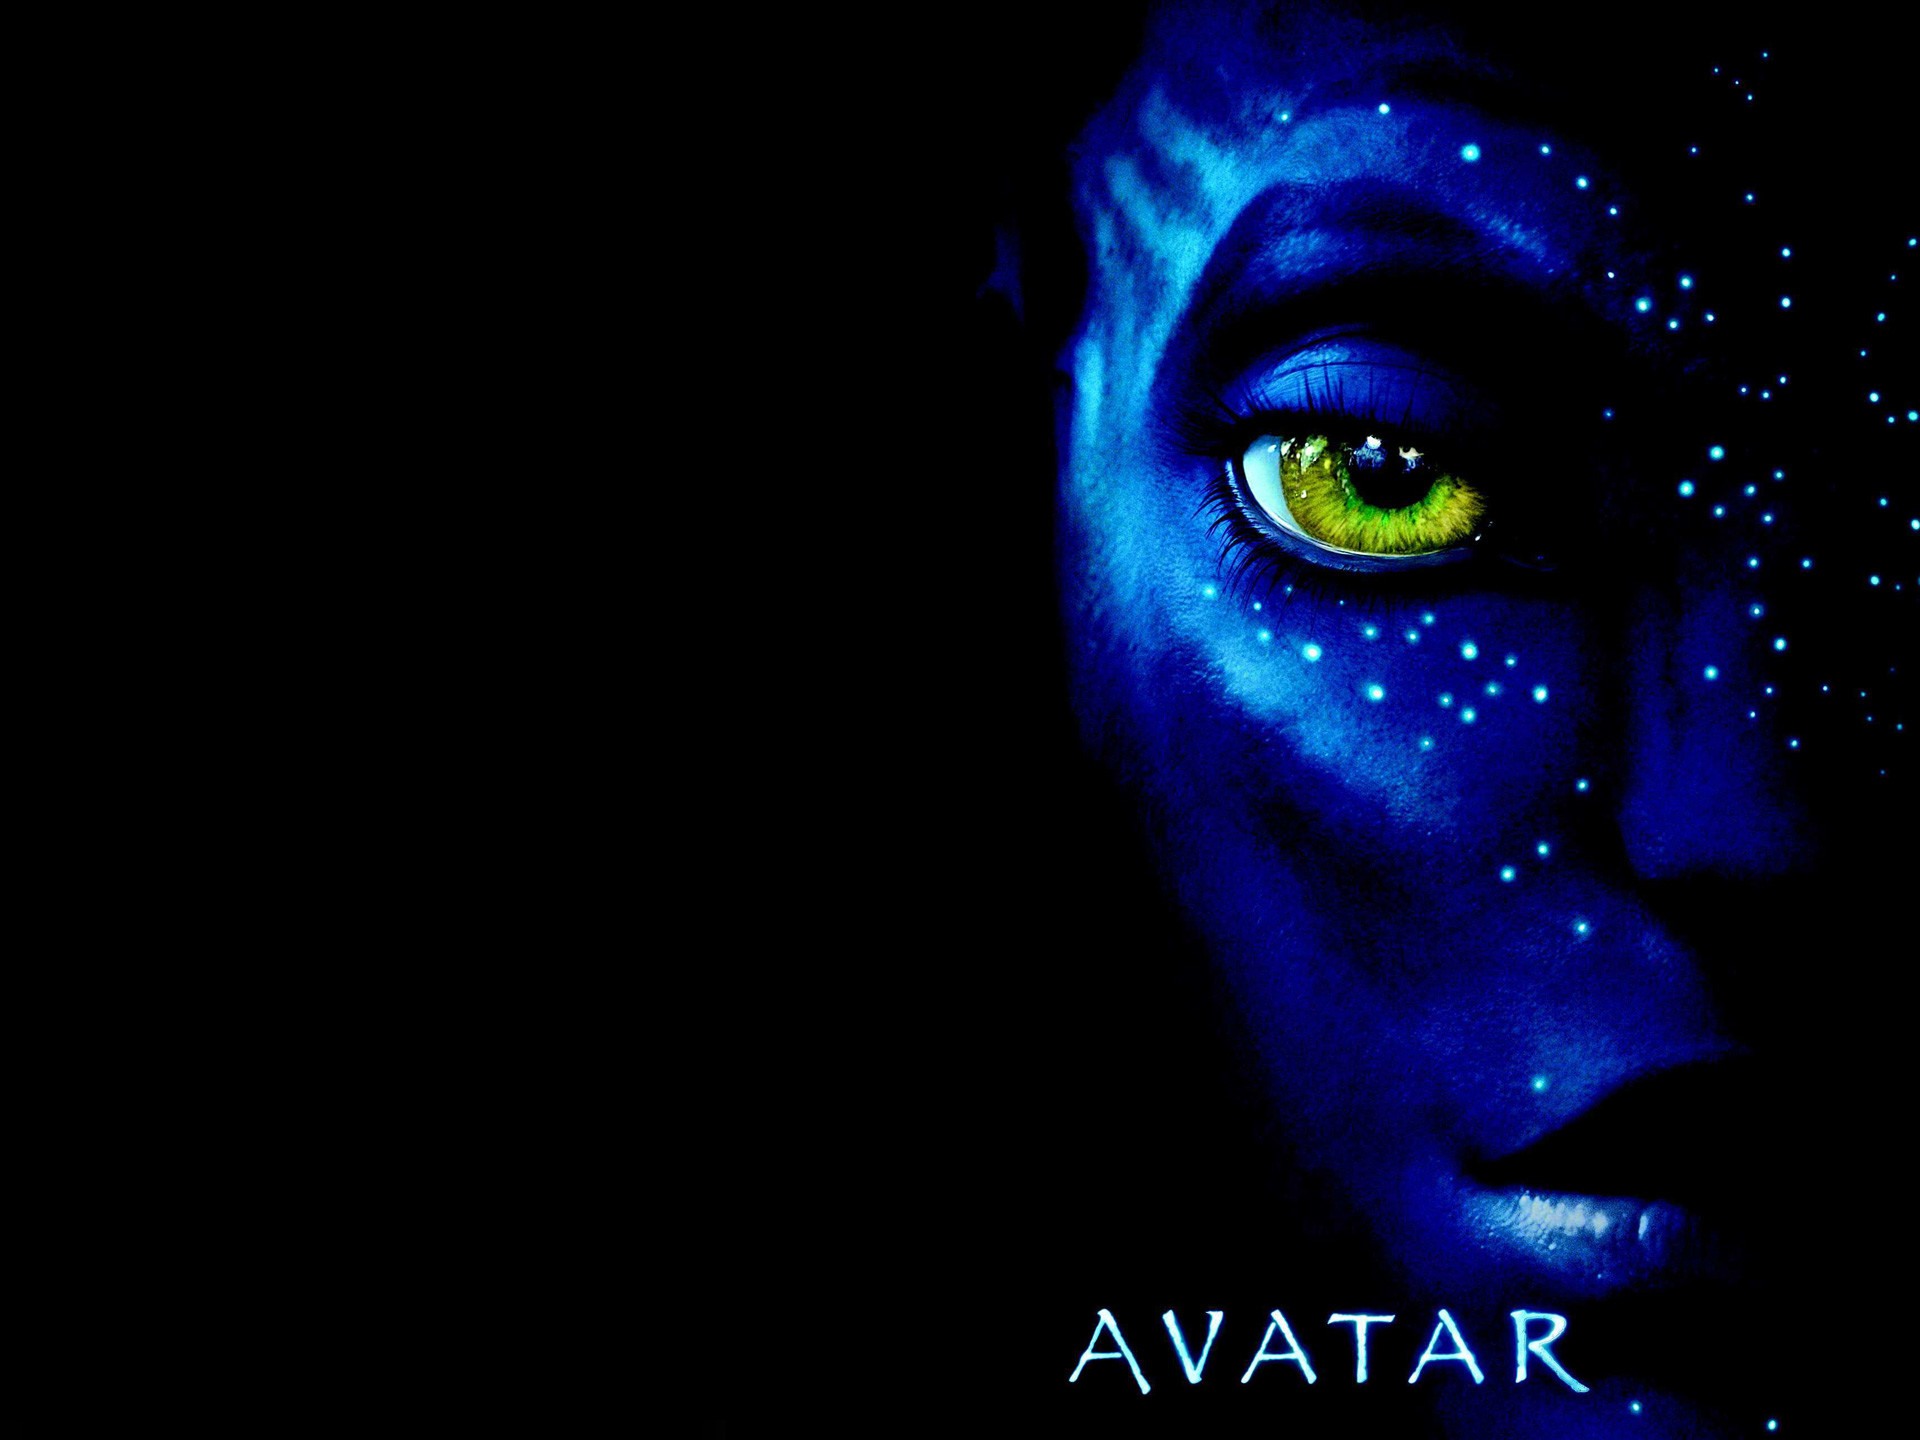 1920x1440 Official Avatar Movie Poster Wallpapers HD Wallpapers